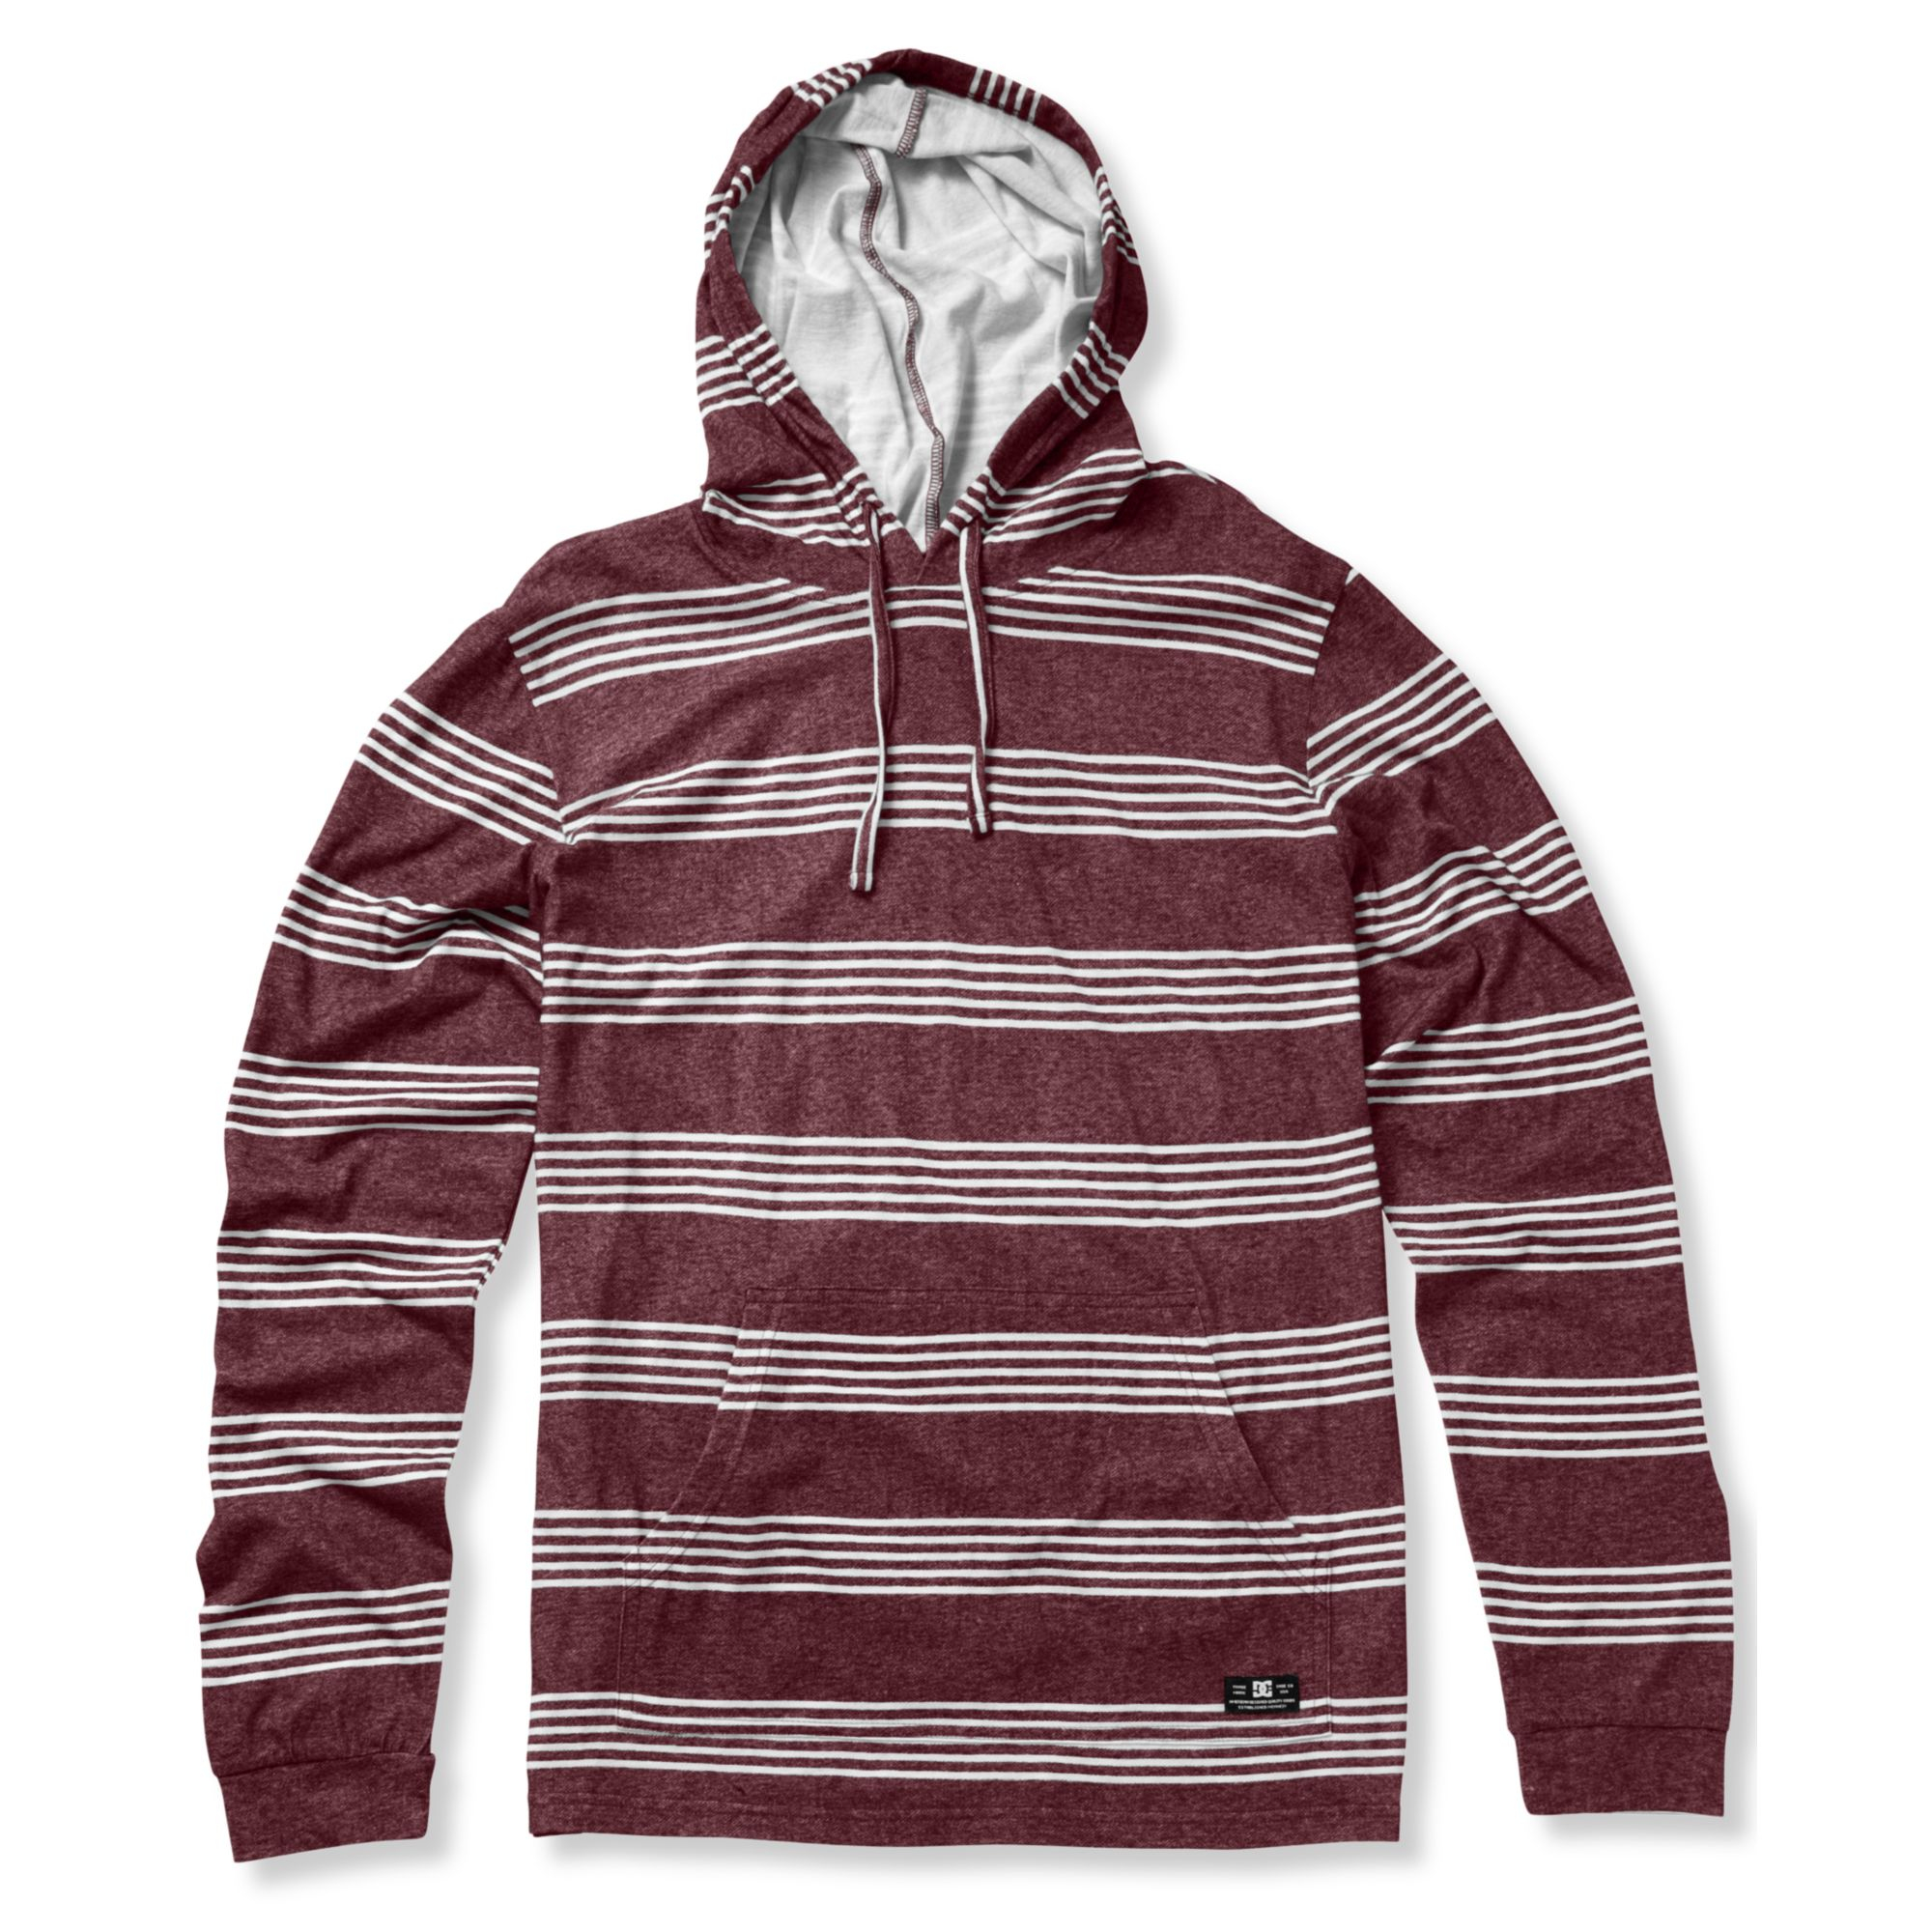 Striped Cotton Pullover Hoodie - Boys 2-7 Sweatshirts - RalphLauren